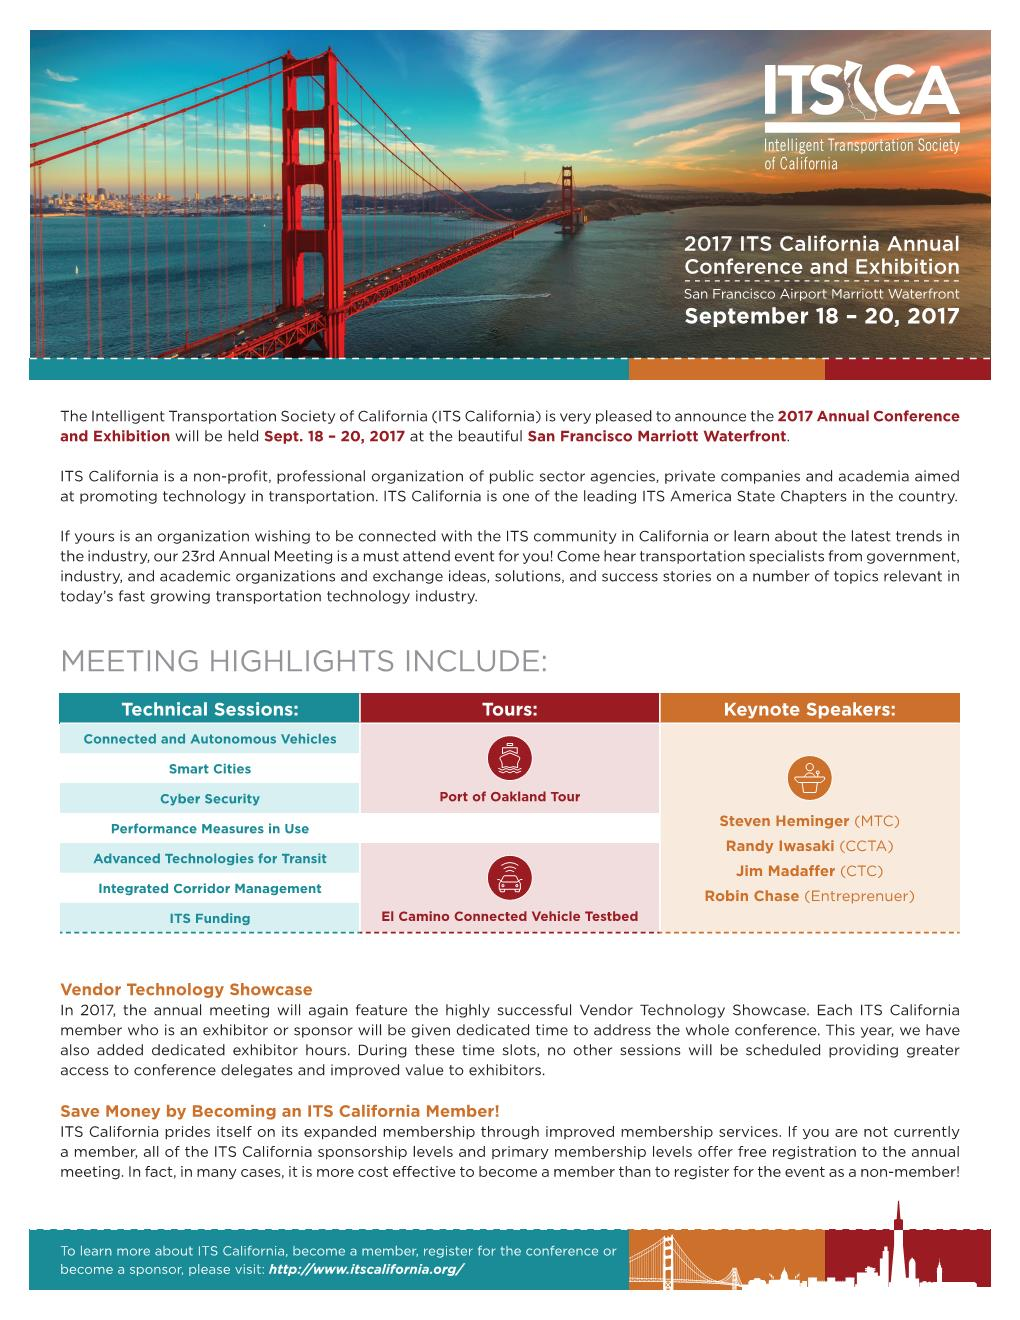 Aimsun Gold Sponsors at ITS California Annual Conference and Exhibition in San Francisco